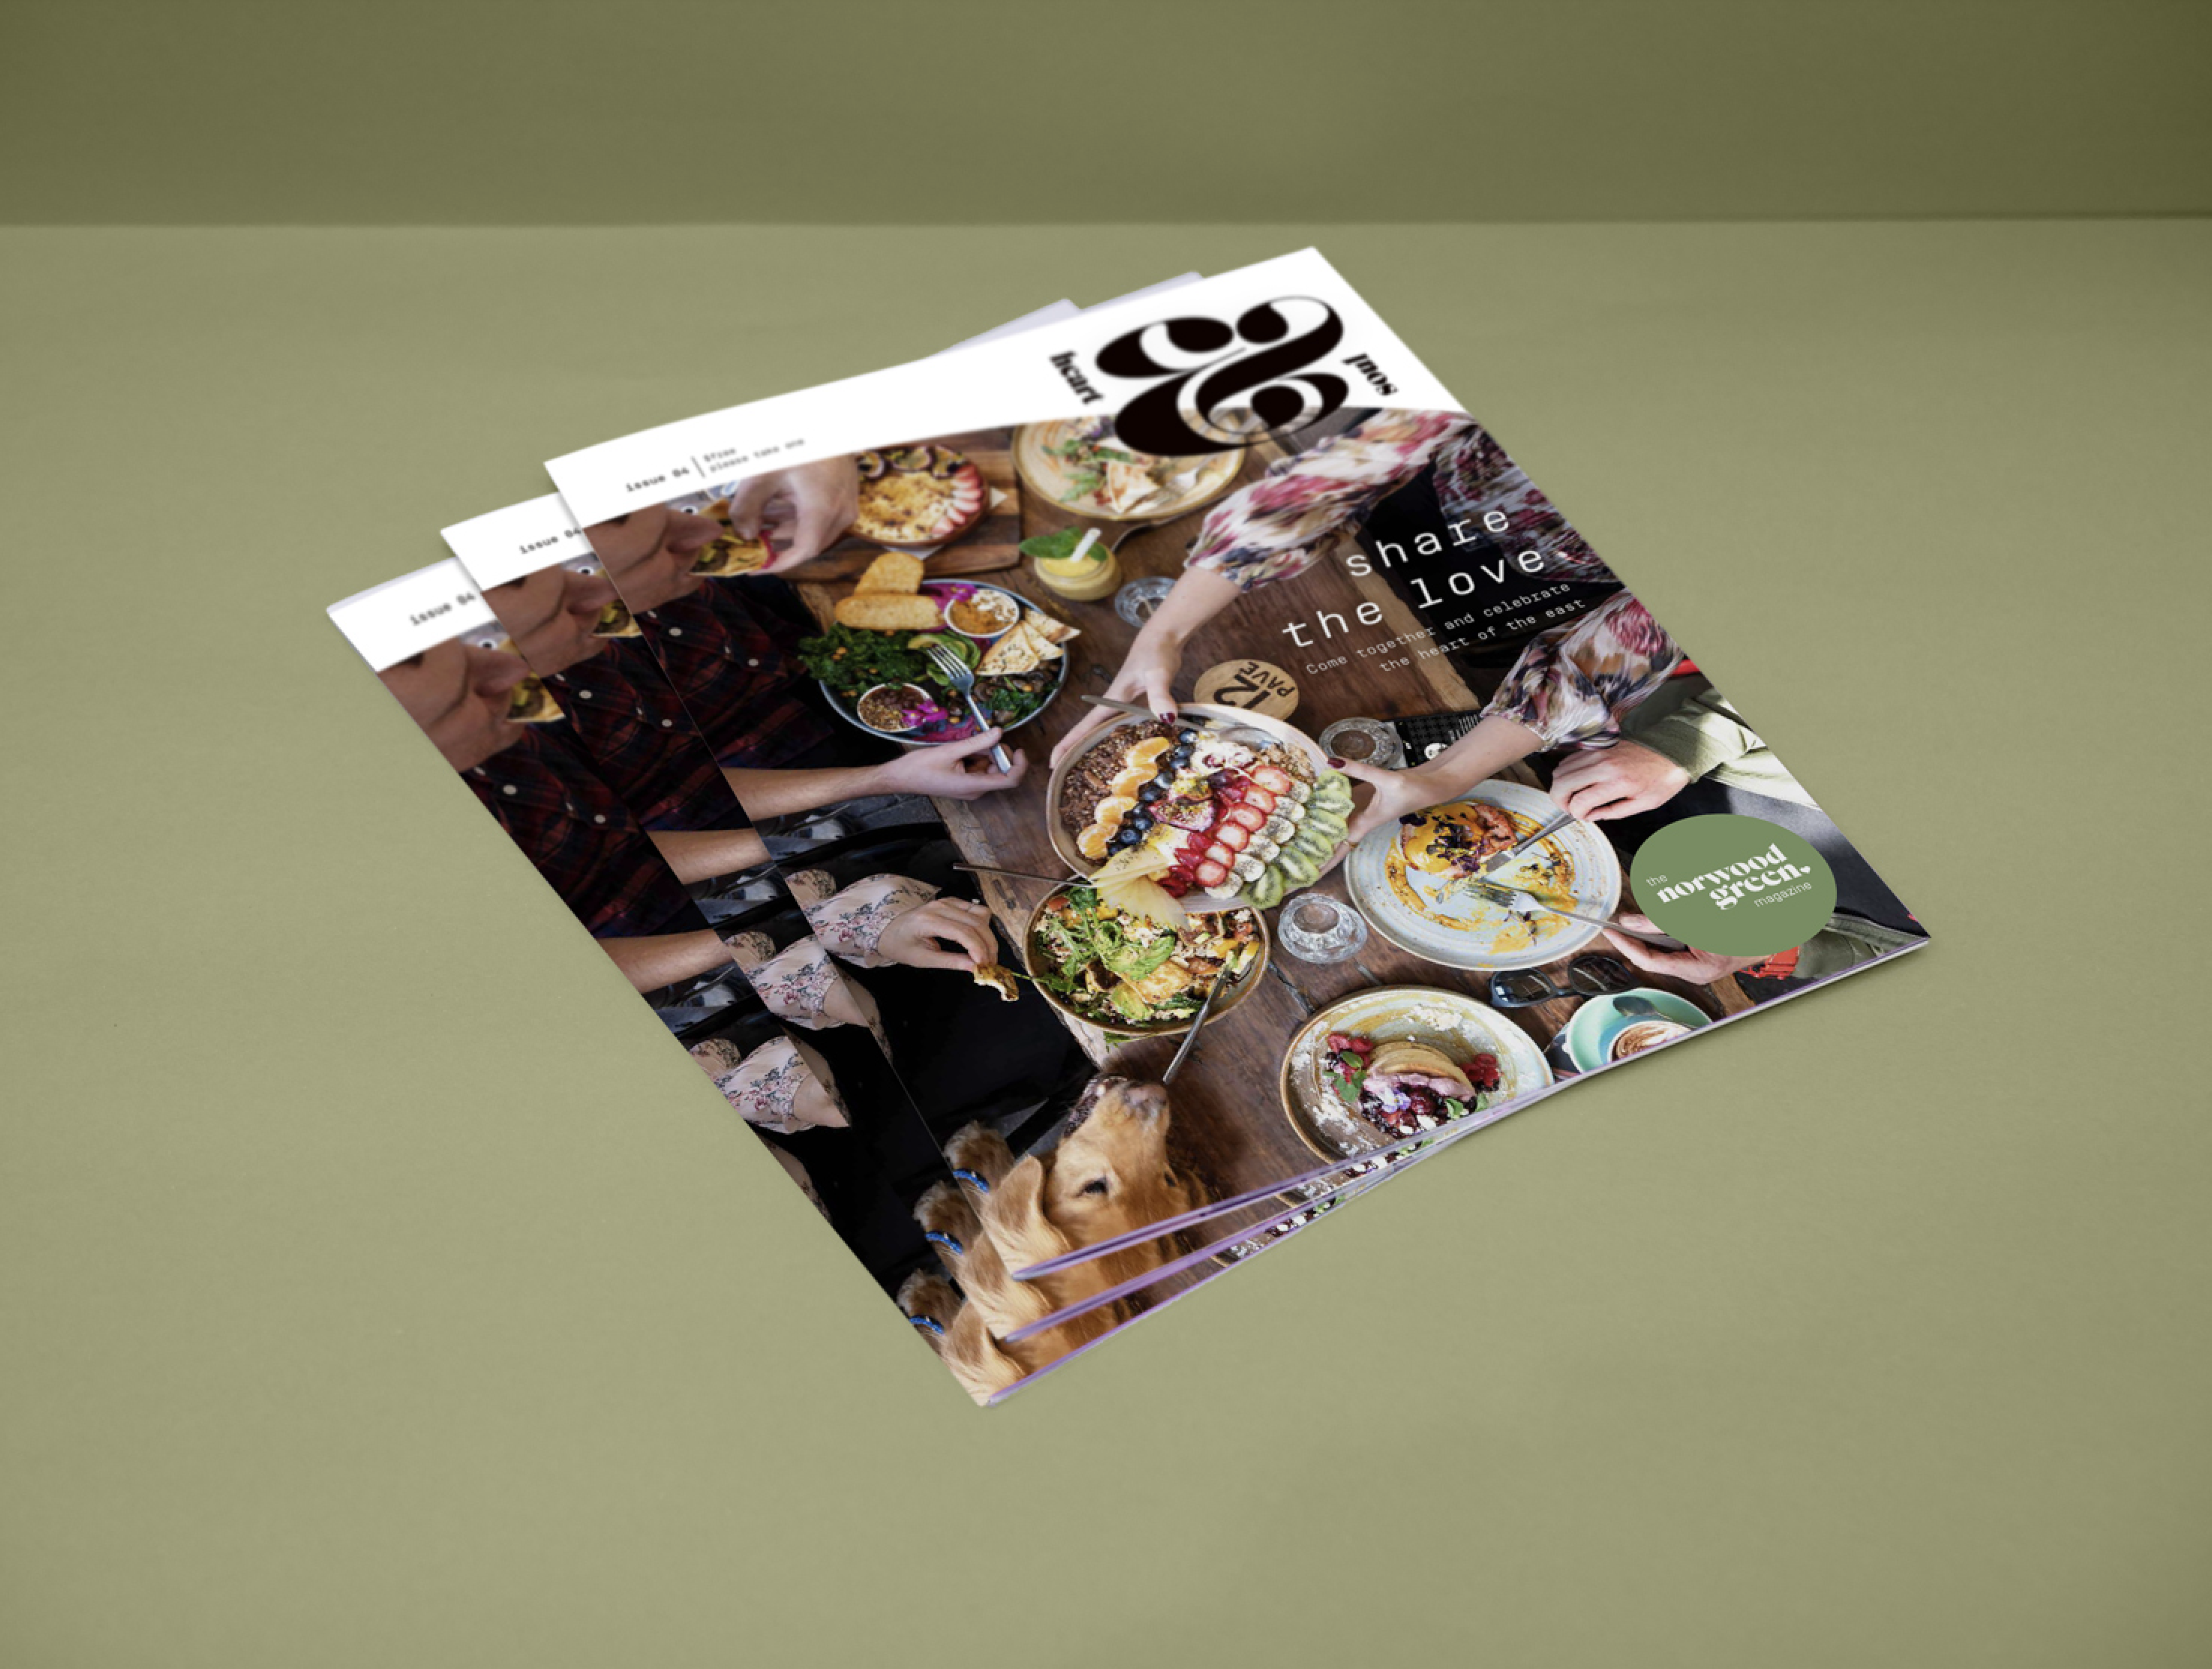 New spring issue of heart&Soul is out now